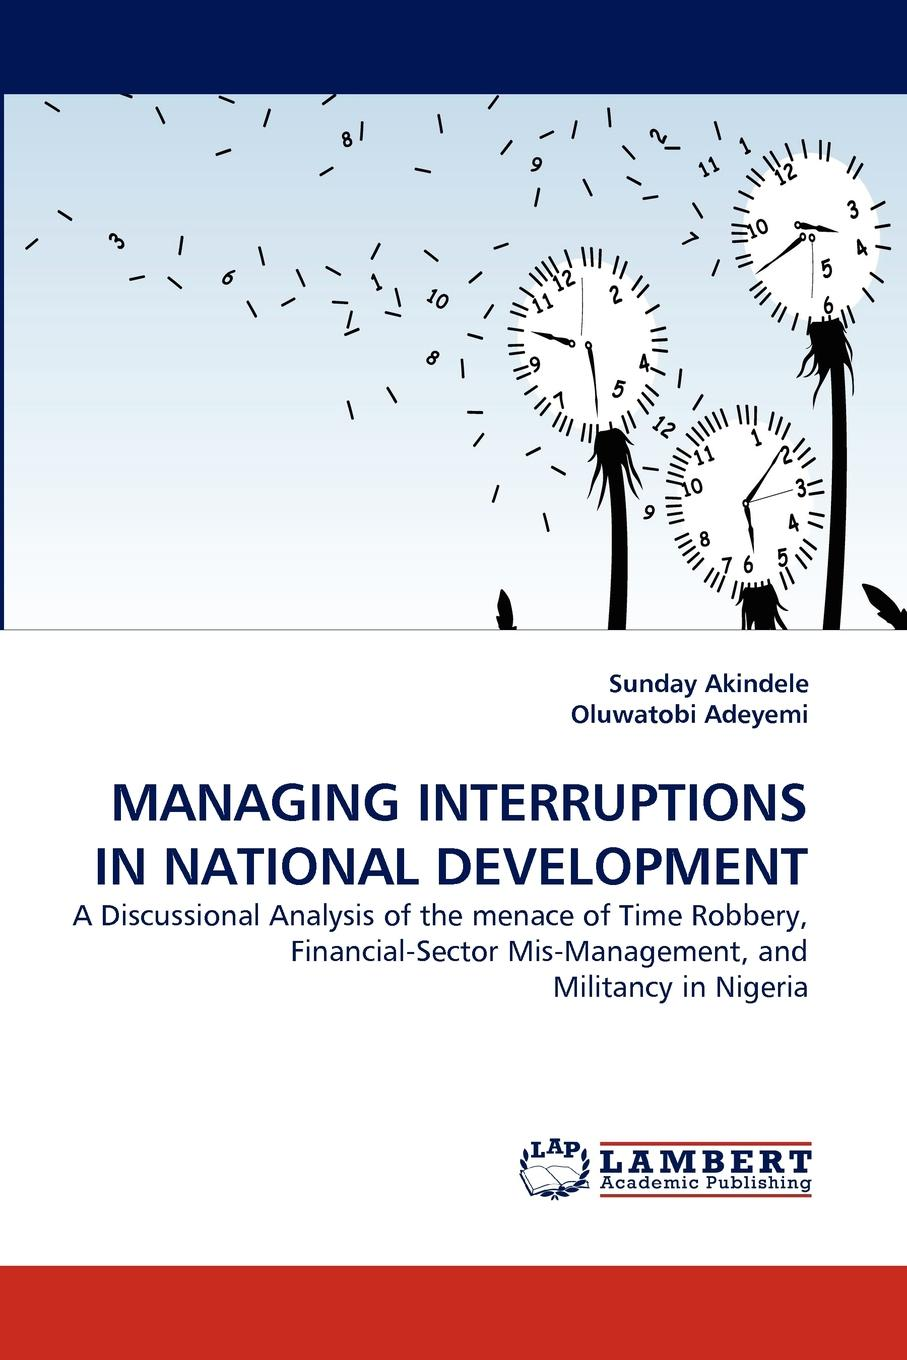 Sunday Akindele, Oluwatobi Adeyemi MANAGING INTERRUPTIONS IN NATIONAL DEVELOPMENT oil militancy and political opportunities in the niger delta